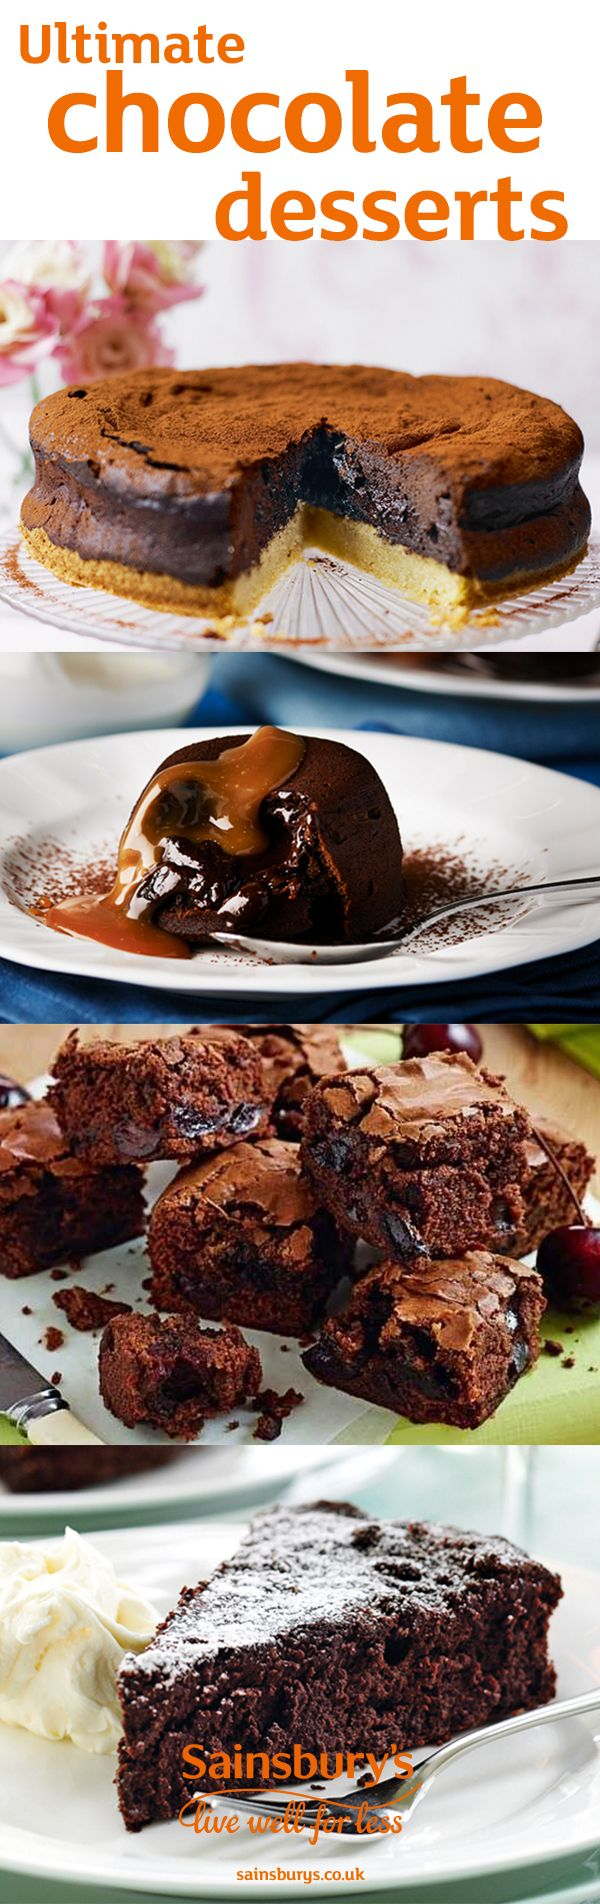 Make one of these show-stopping desserts for friends and family. We've got lots of tasty chocolate recipes including chocolate beetroot brownies, molten chocolate cakes, vegan espresso martini chocolate mousse, gluten-free vegan chocolate brownies, chocolate souffles,  chocolate cheesecake and more. A great date-night treat.